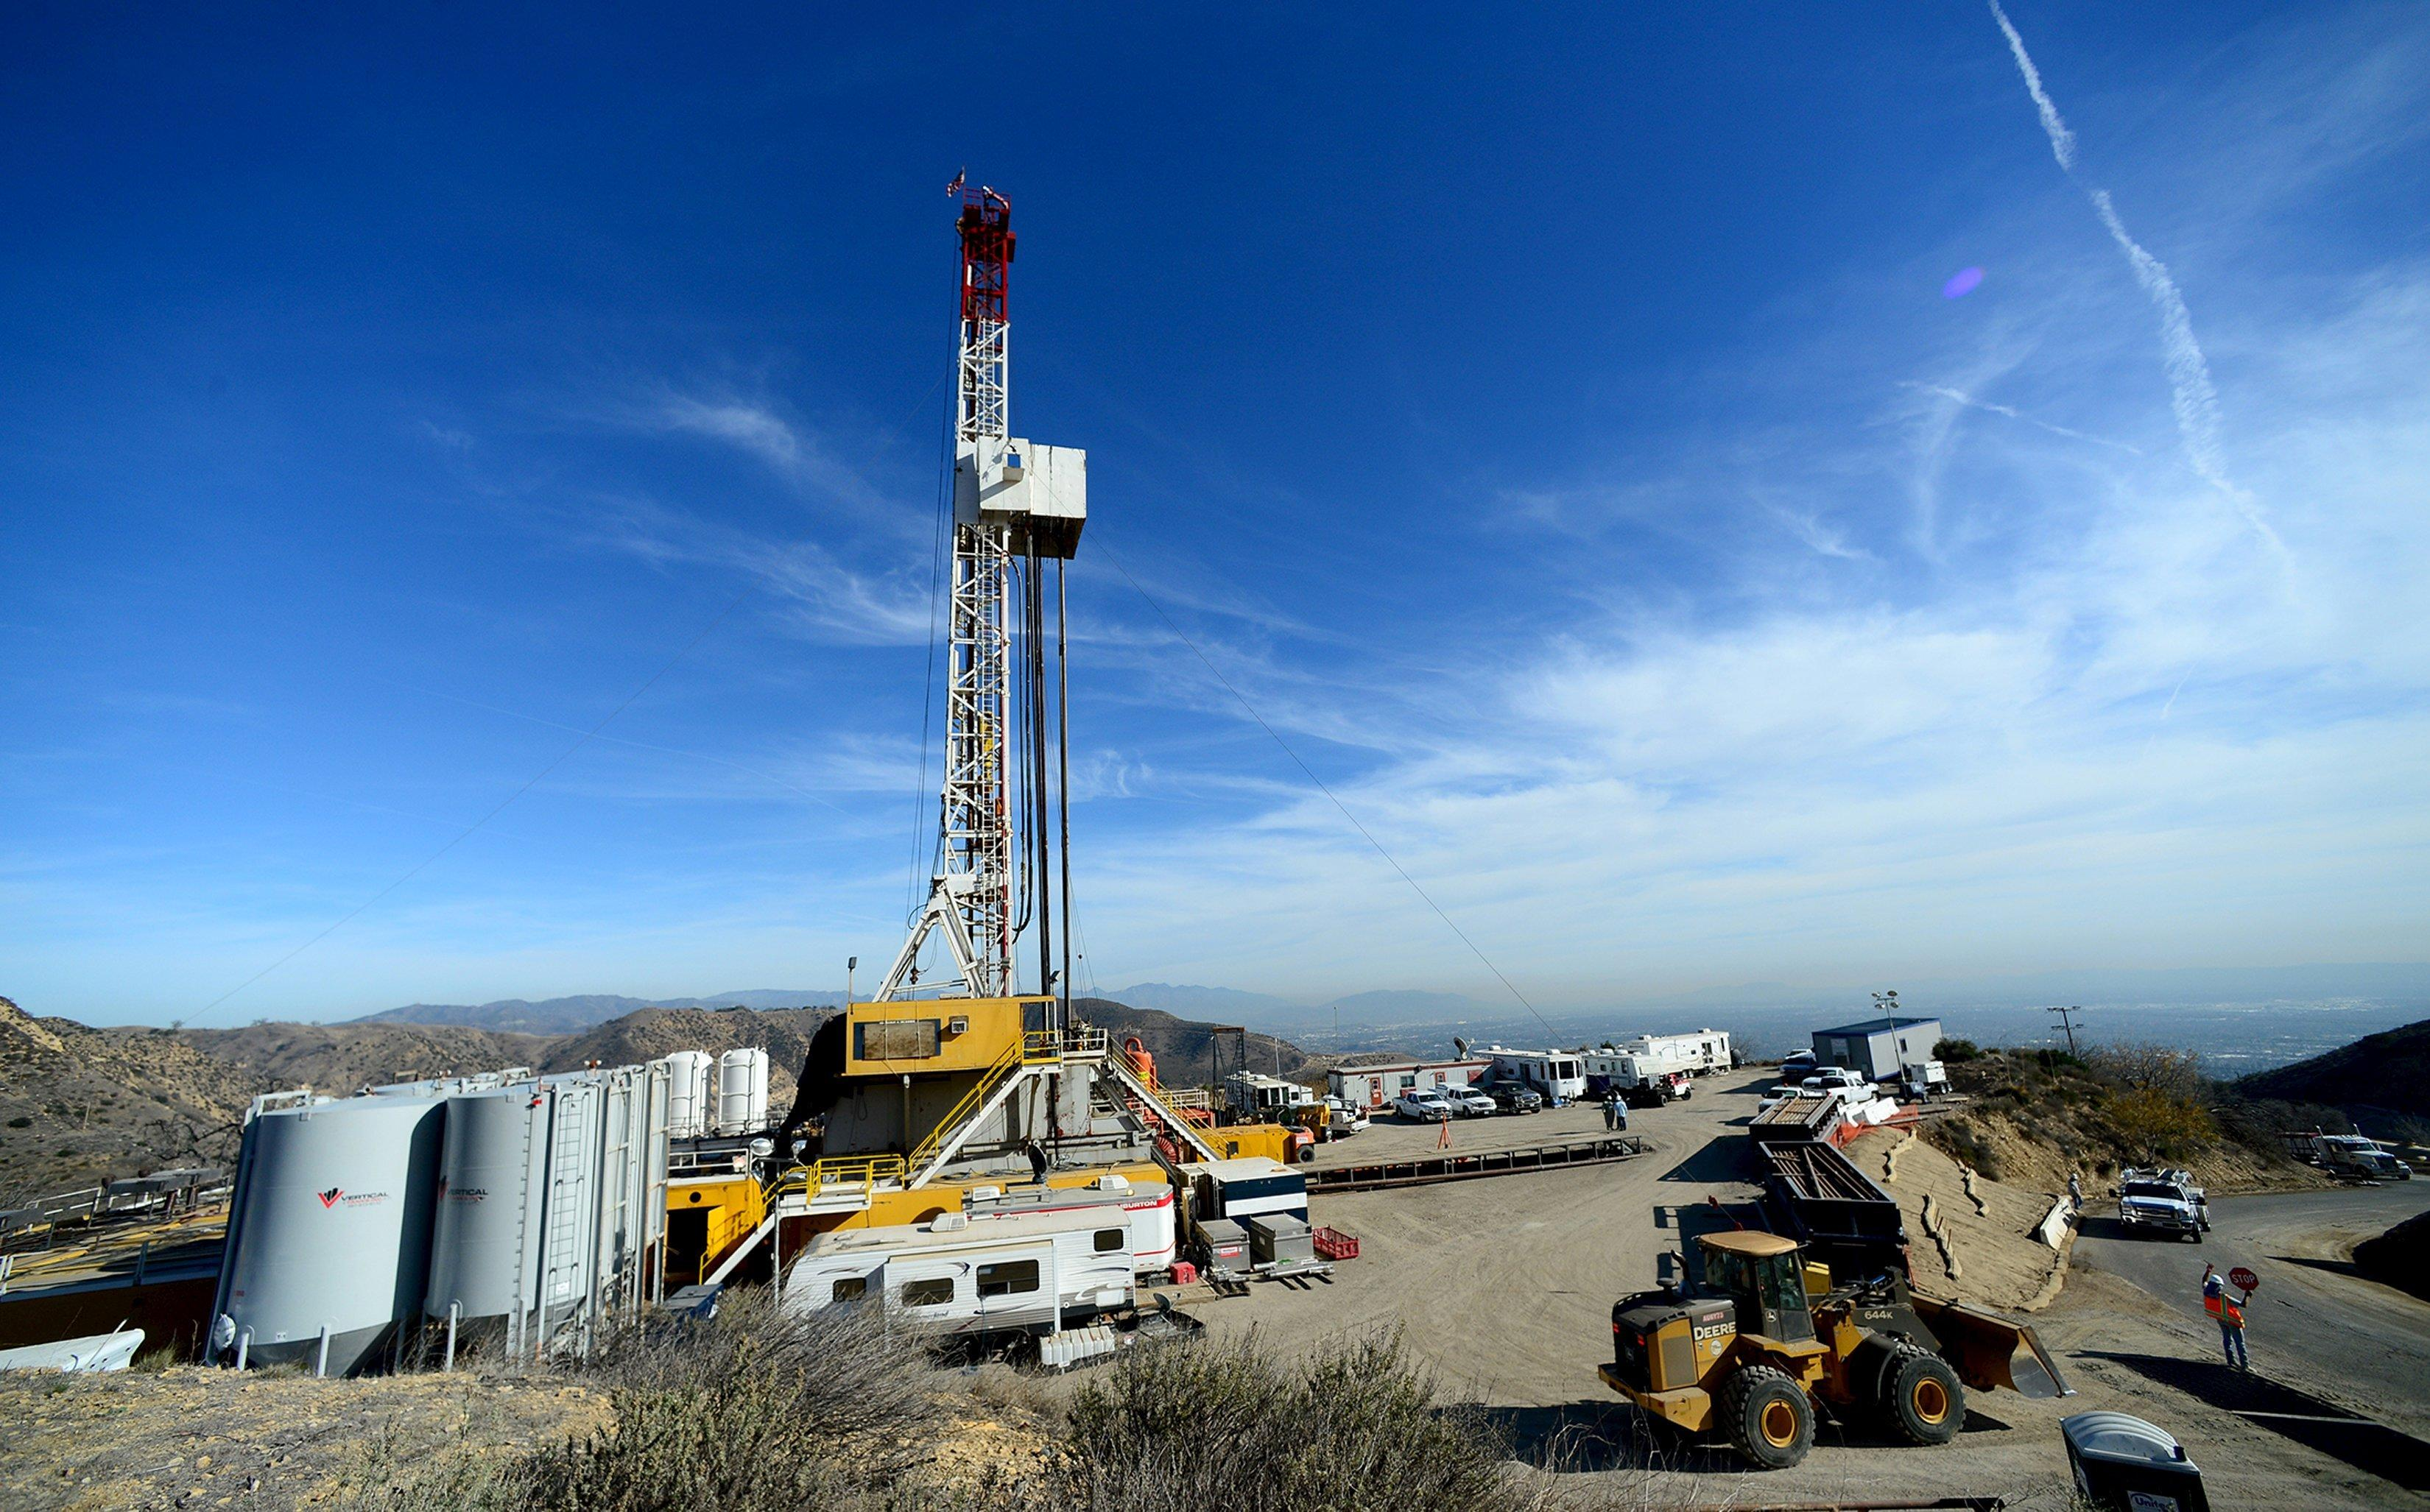 The California Gas Leak Ends, but It's a Rough Week for Environmentalists